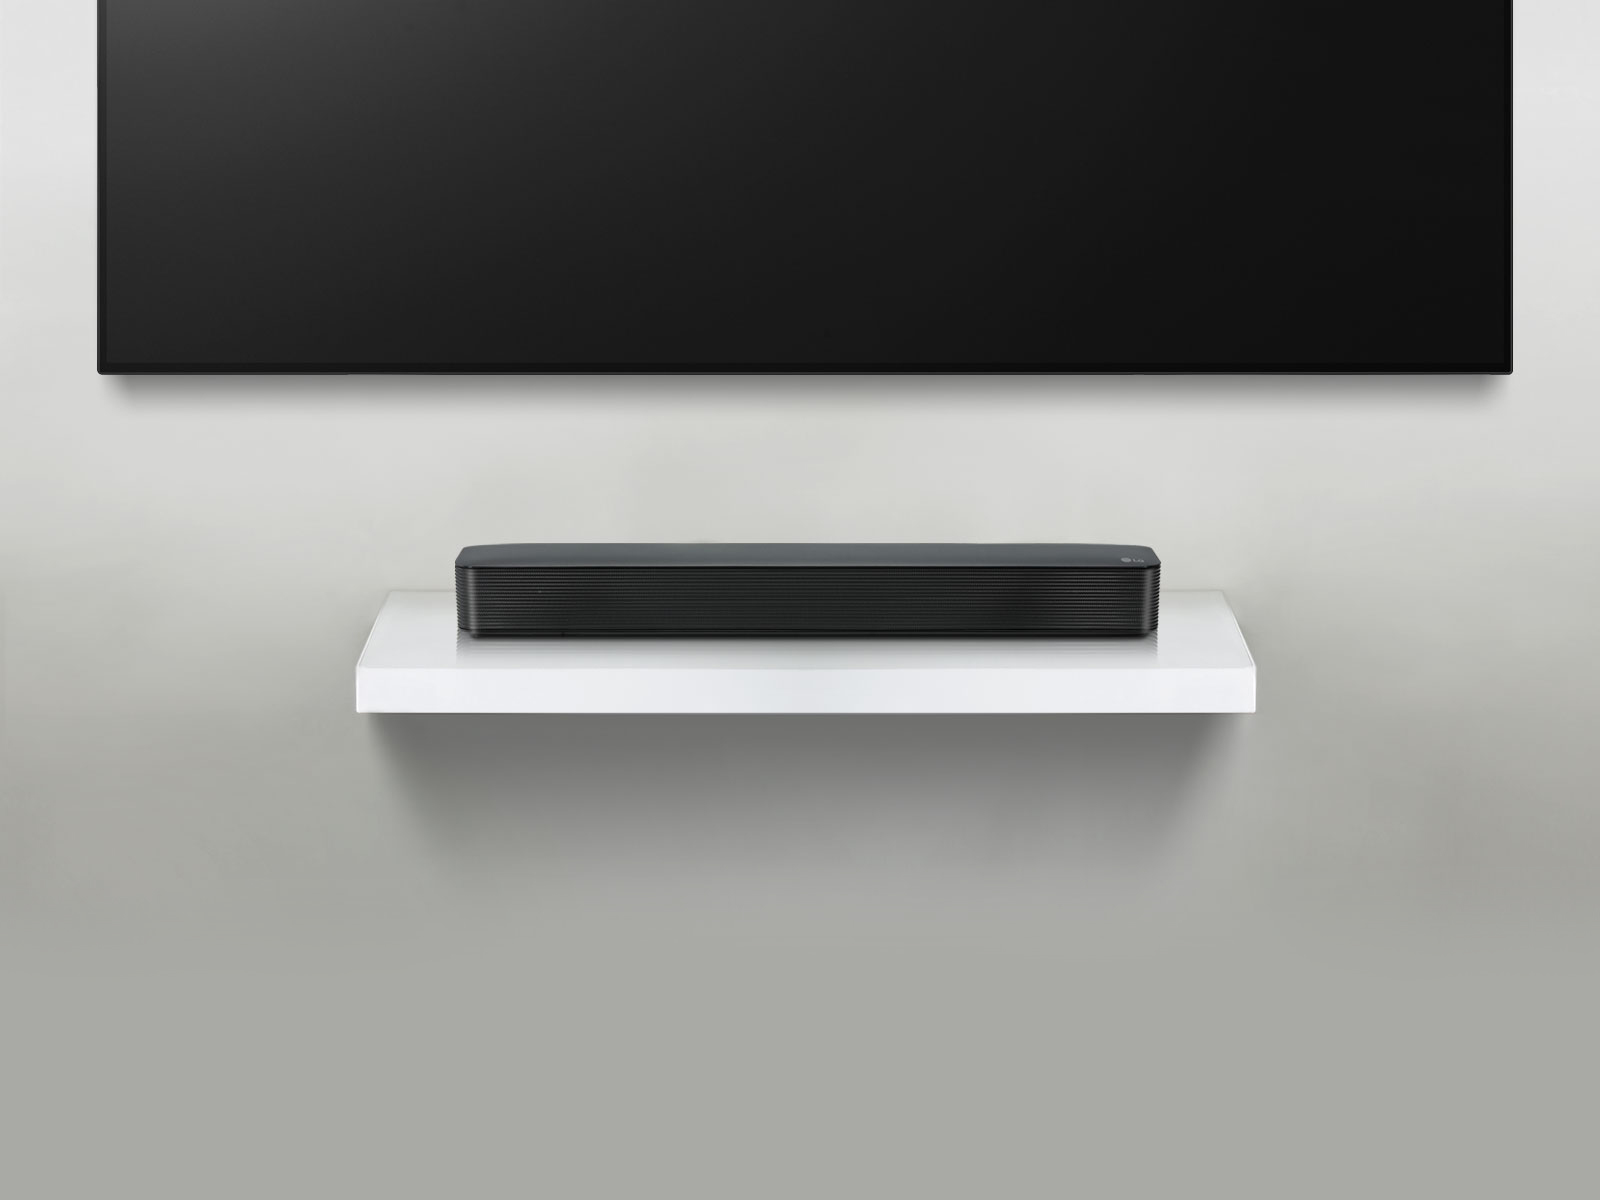 LG SK1 40W 2 ch Compact Sound Bar with Bluetooth® Connectivity - Newegg com